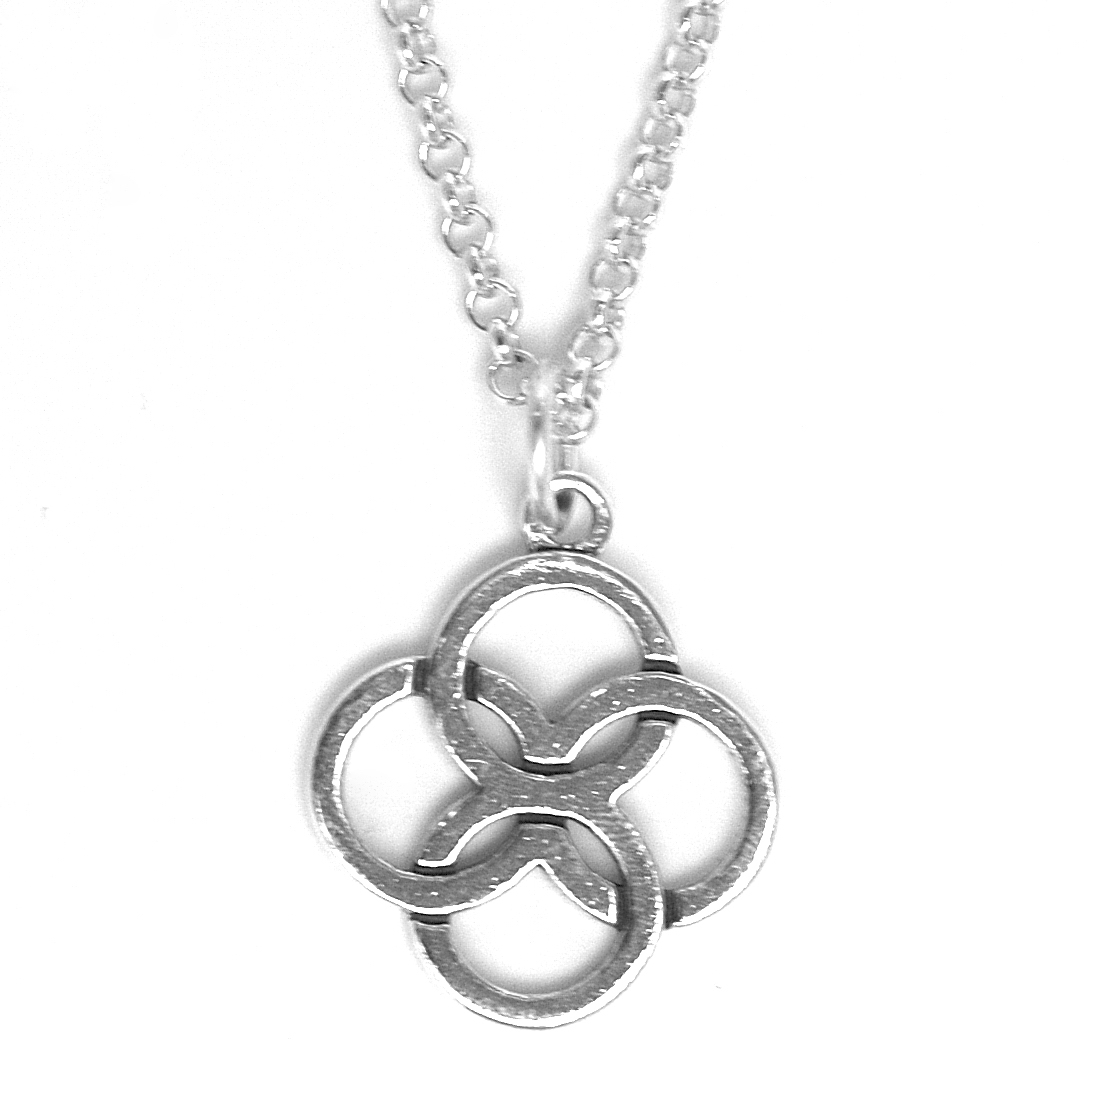 Necklace mystic knot leonor heleno designs fashion jewelry necklace mystic knot mozeypictures Image collections